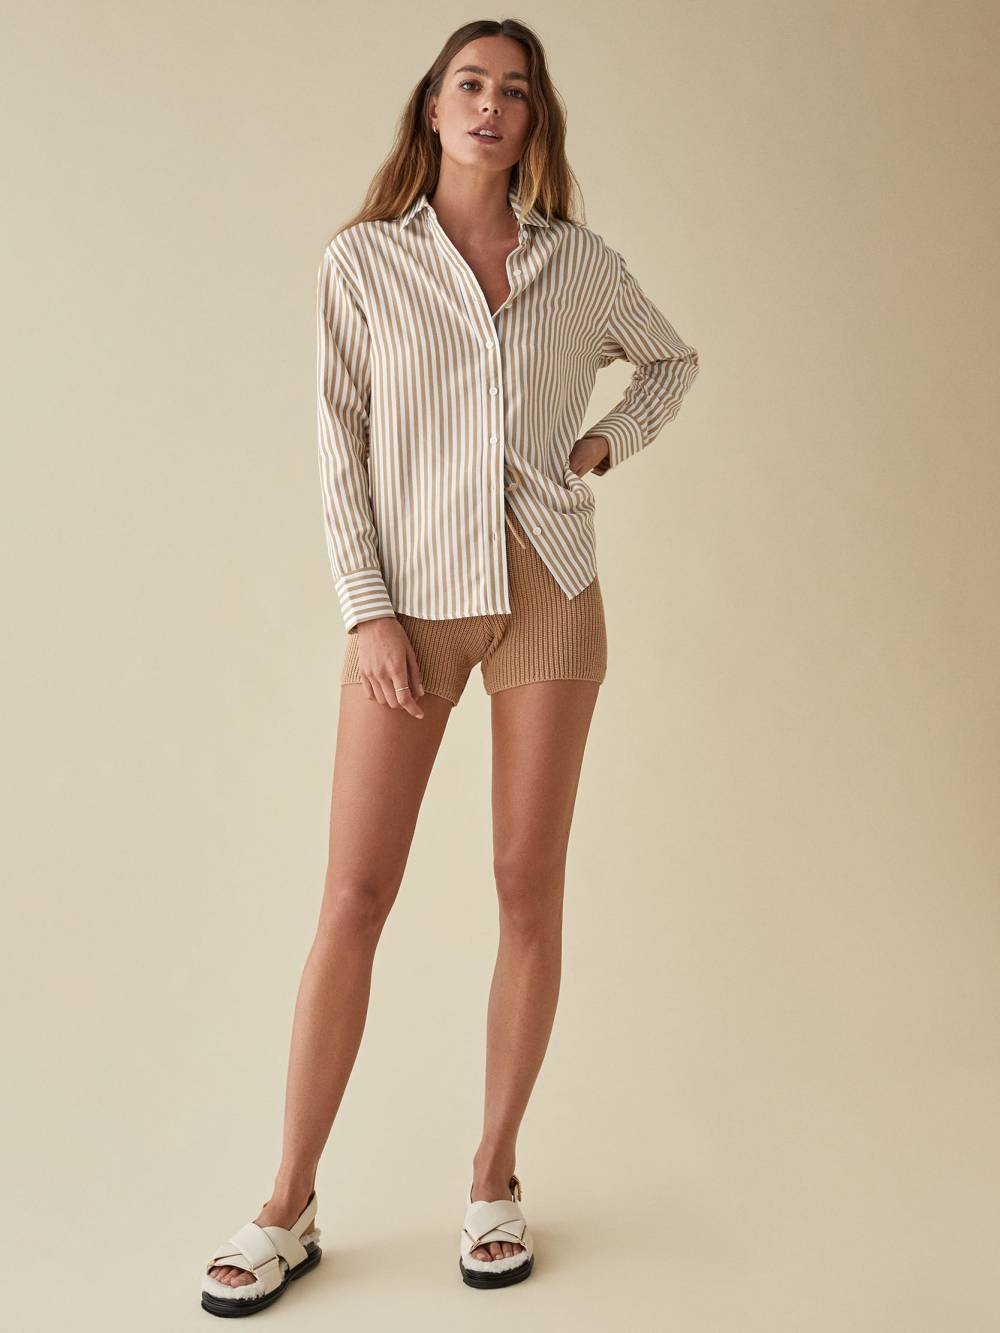 reformation shirts cute comfy clothes